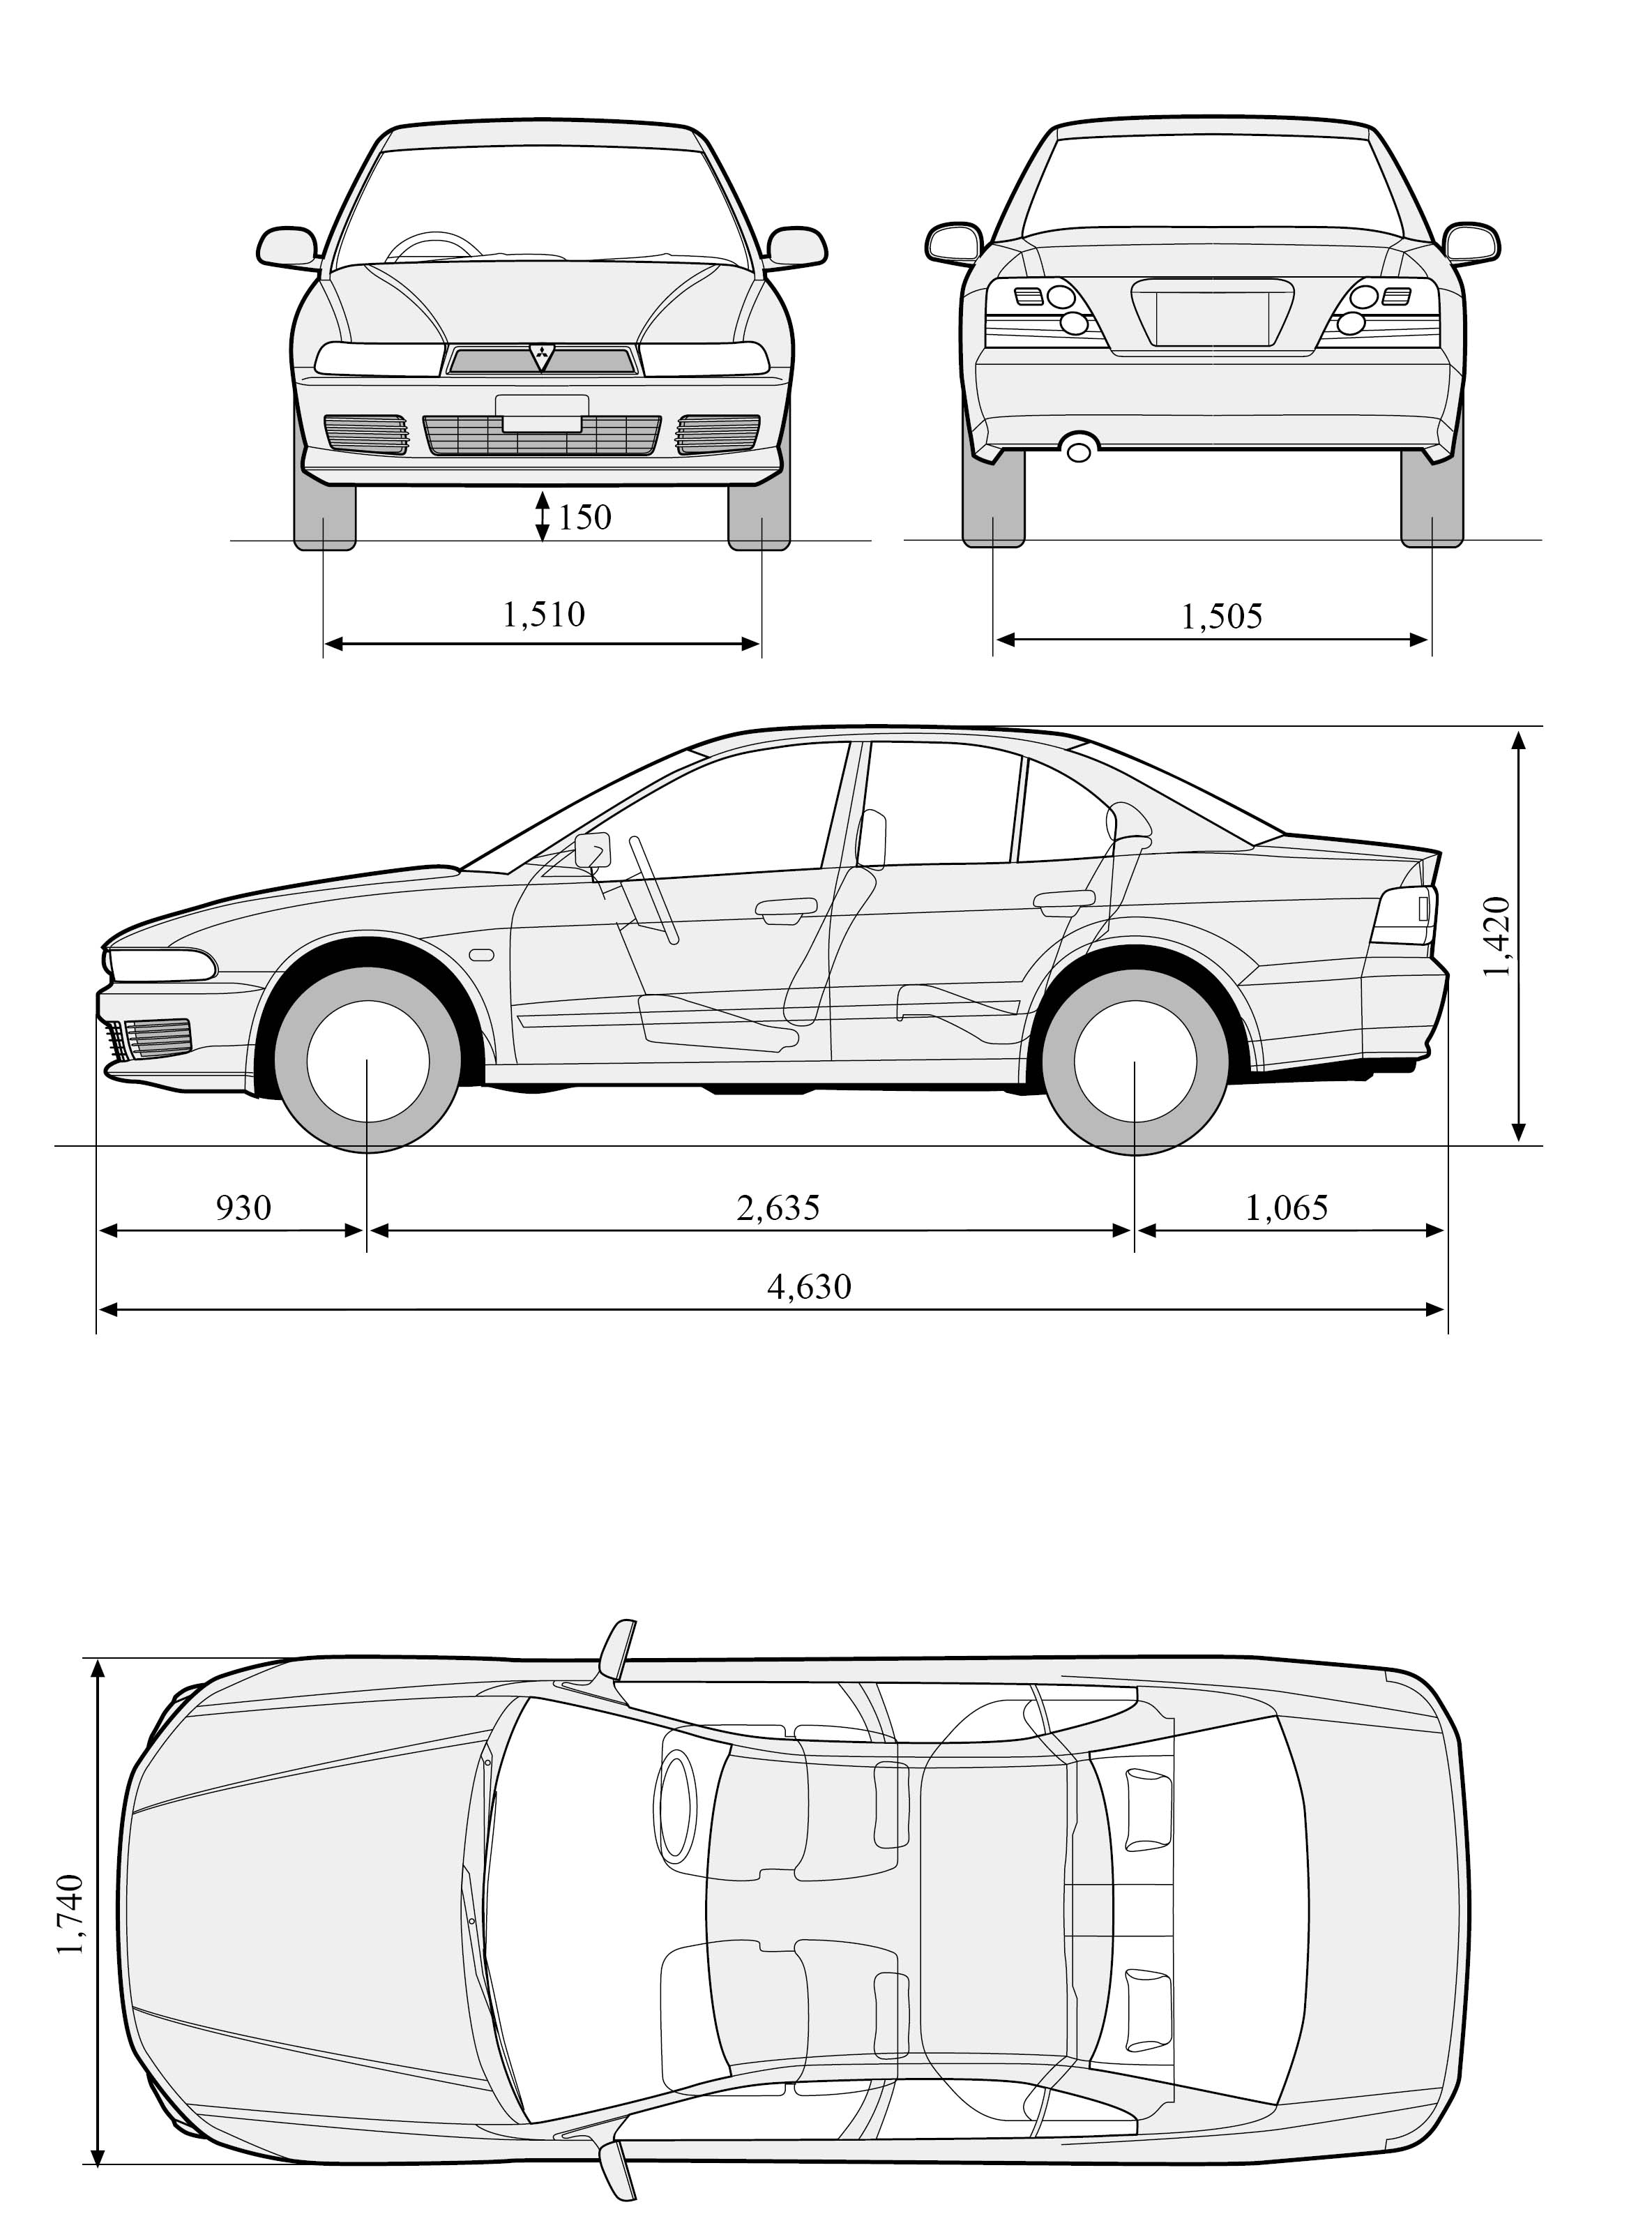 Galant] Blueprints - Datenbank - Mitsubishi Fan Forum